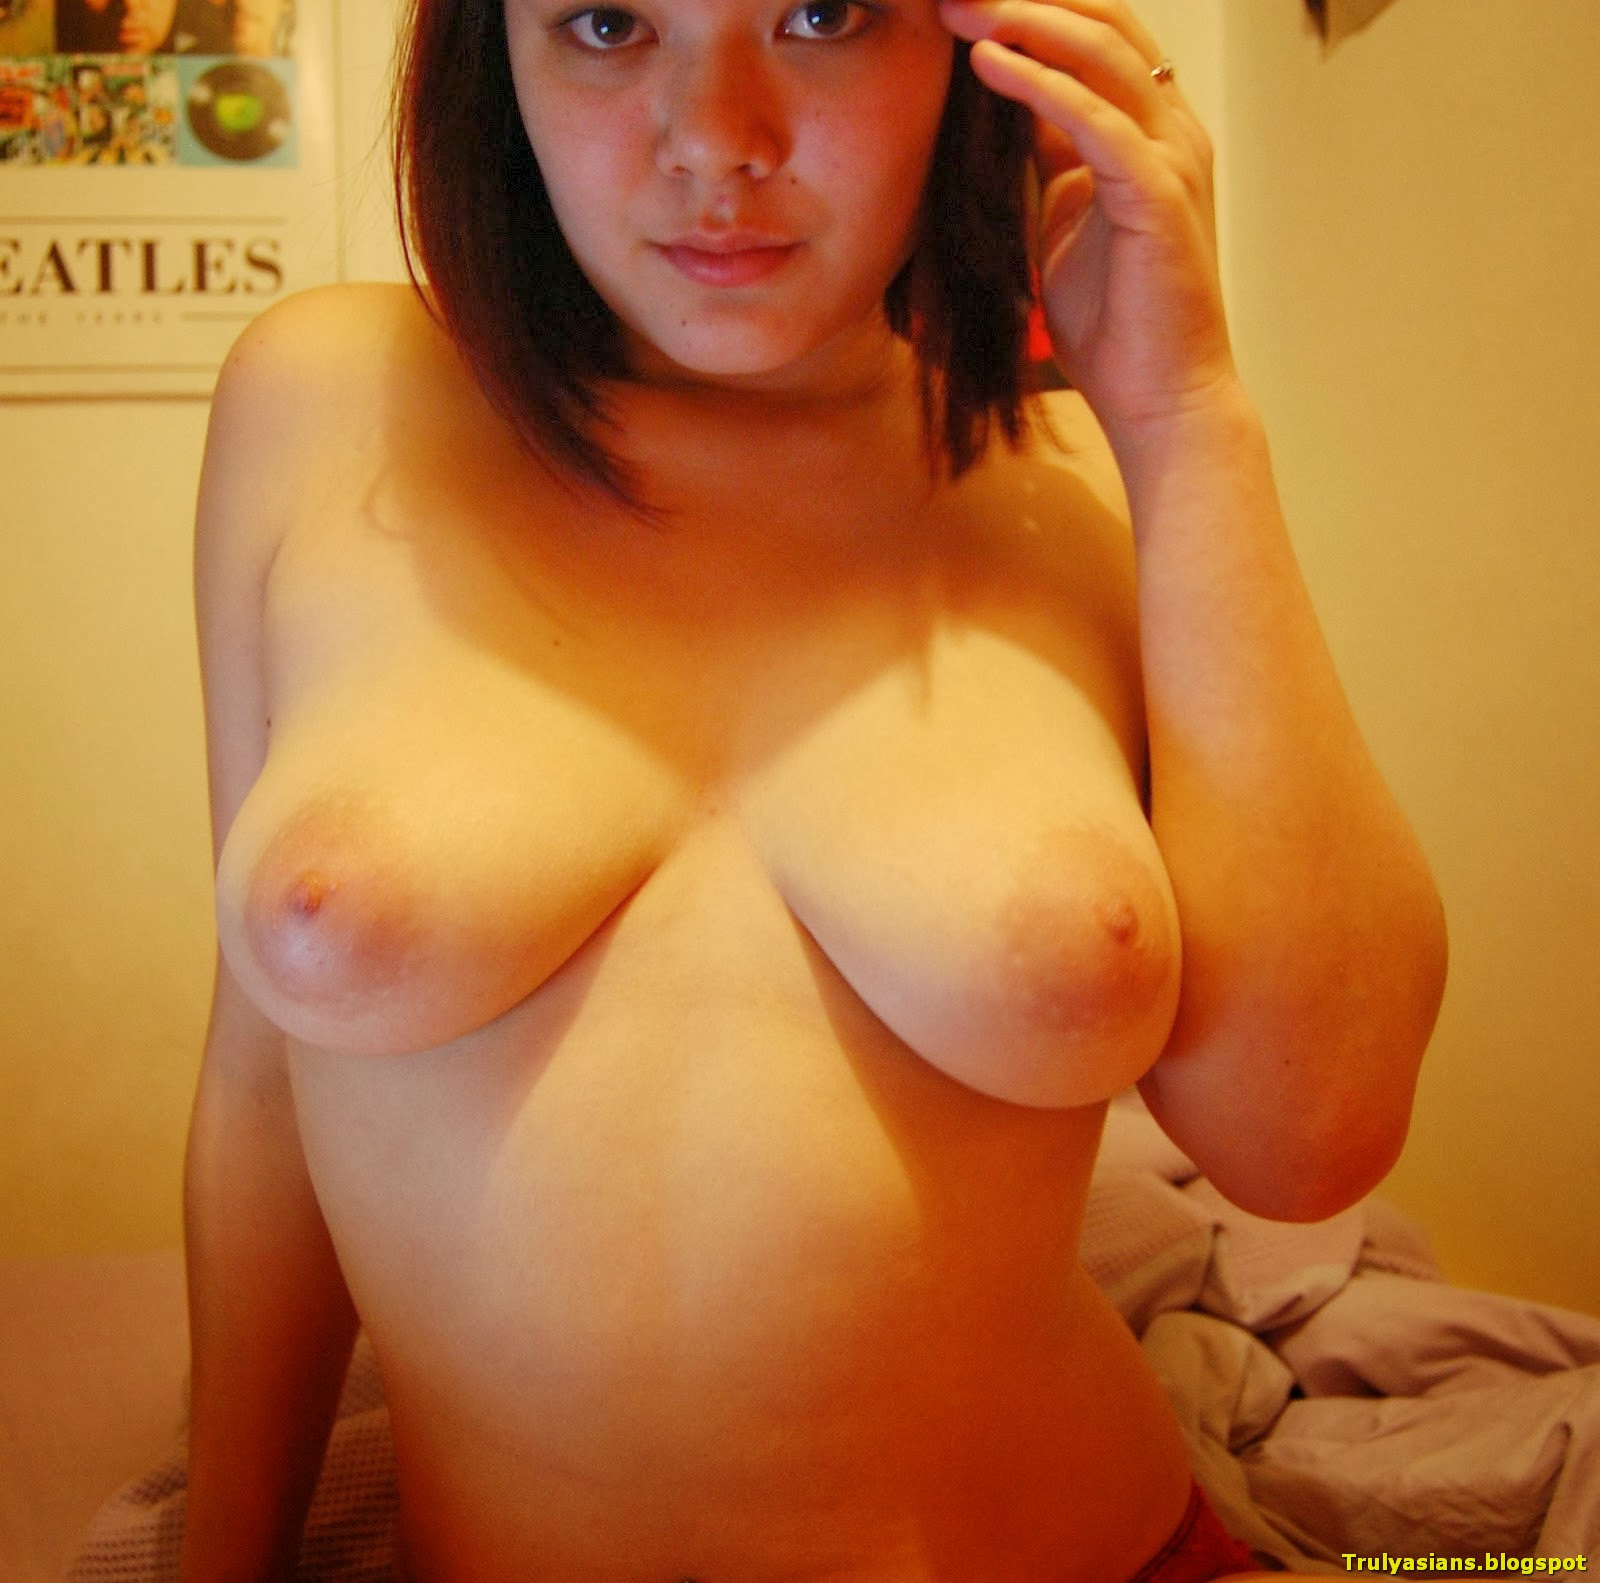 Teen chubby asian nude